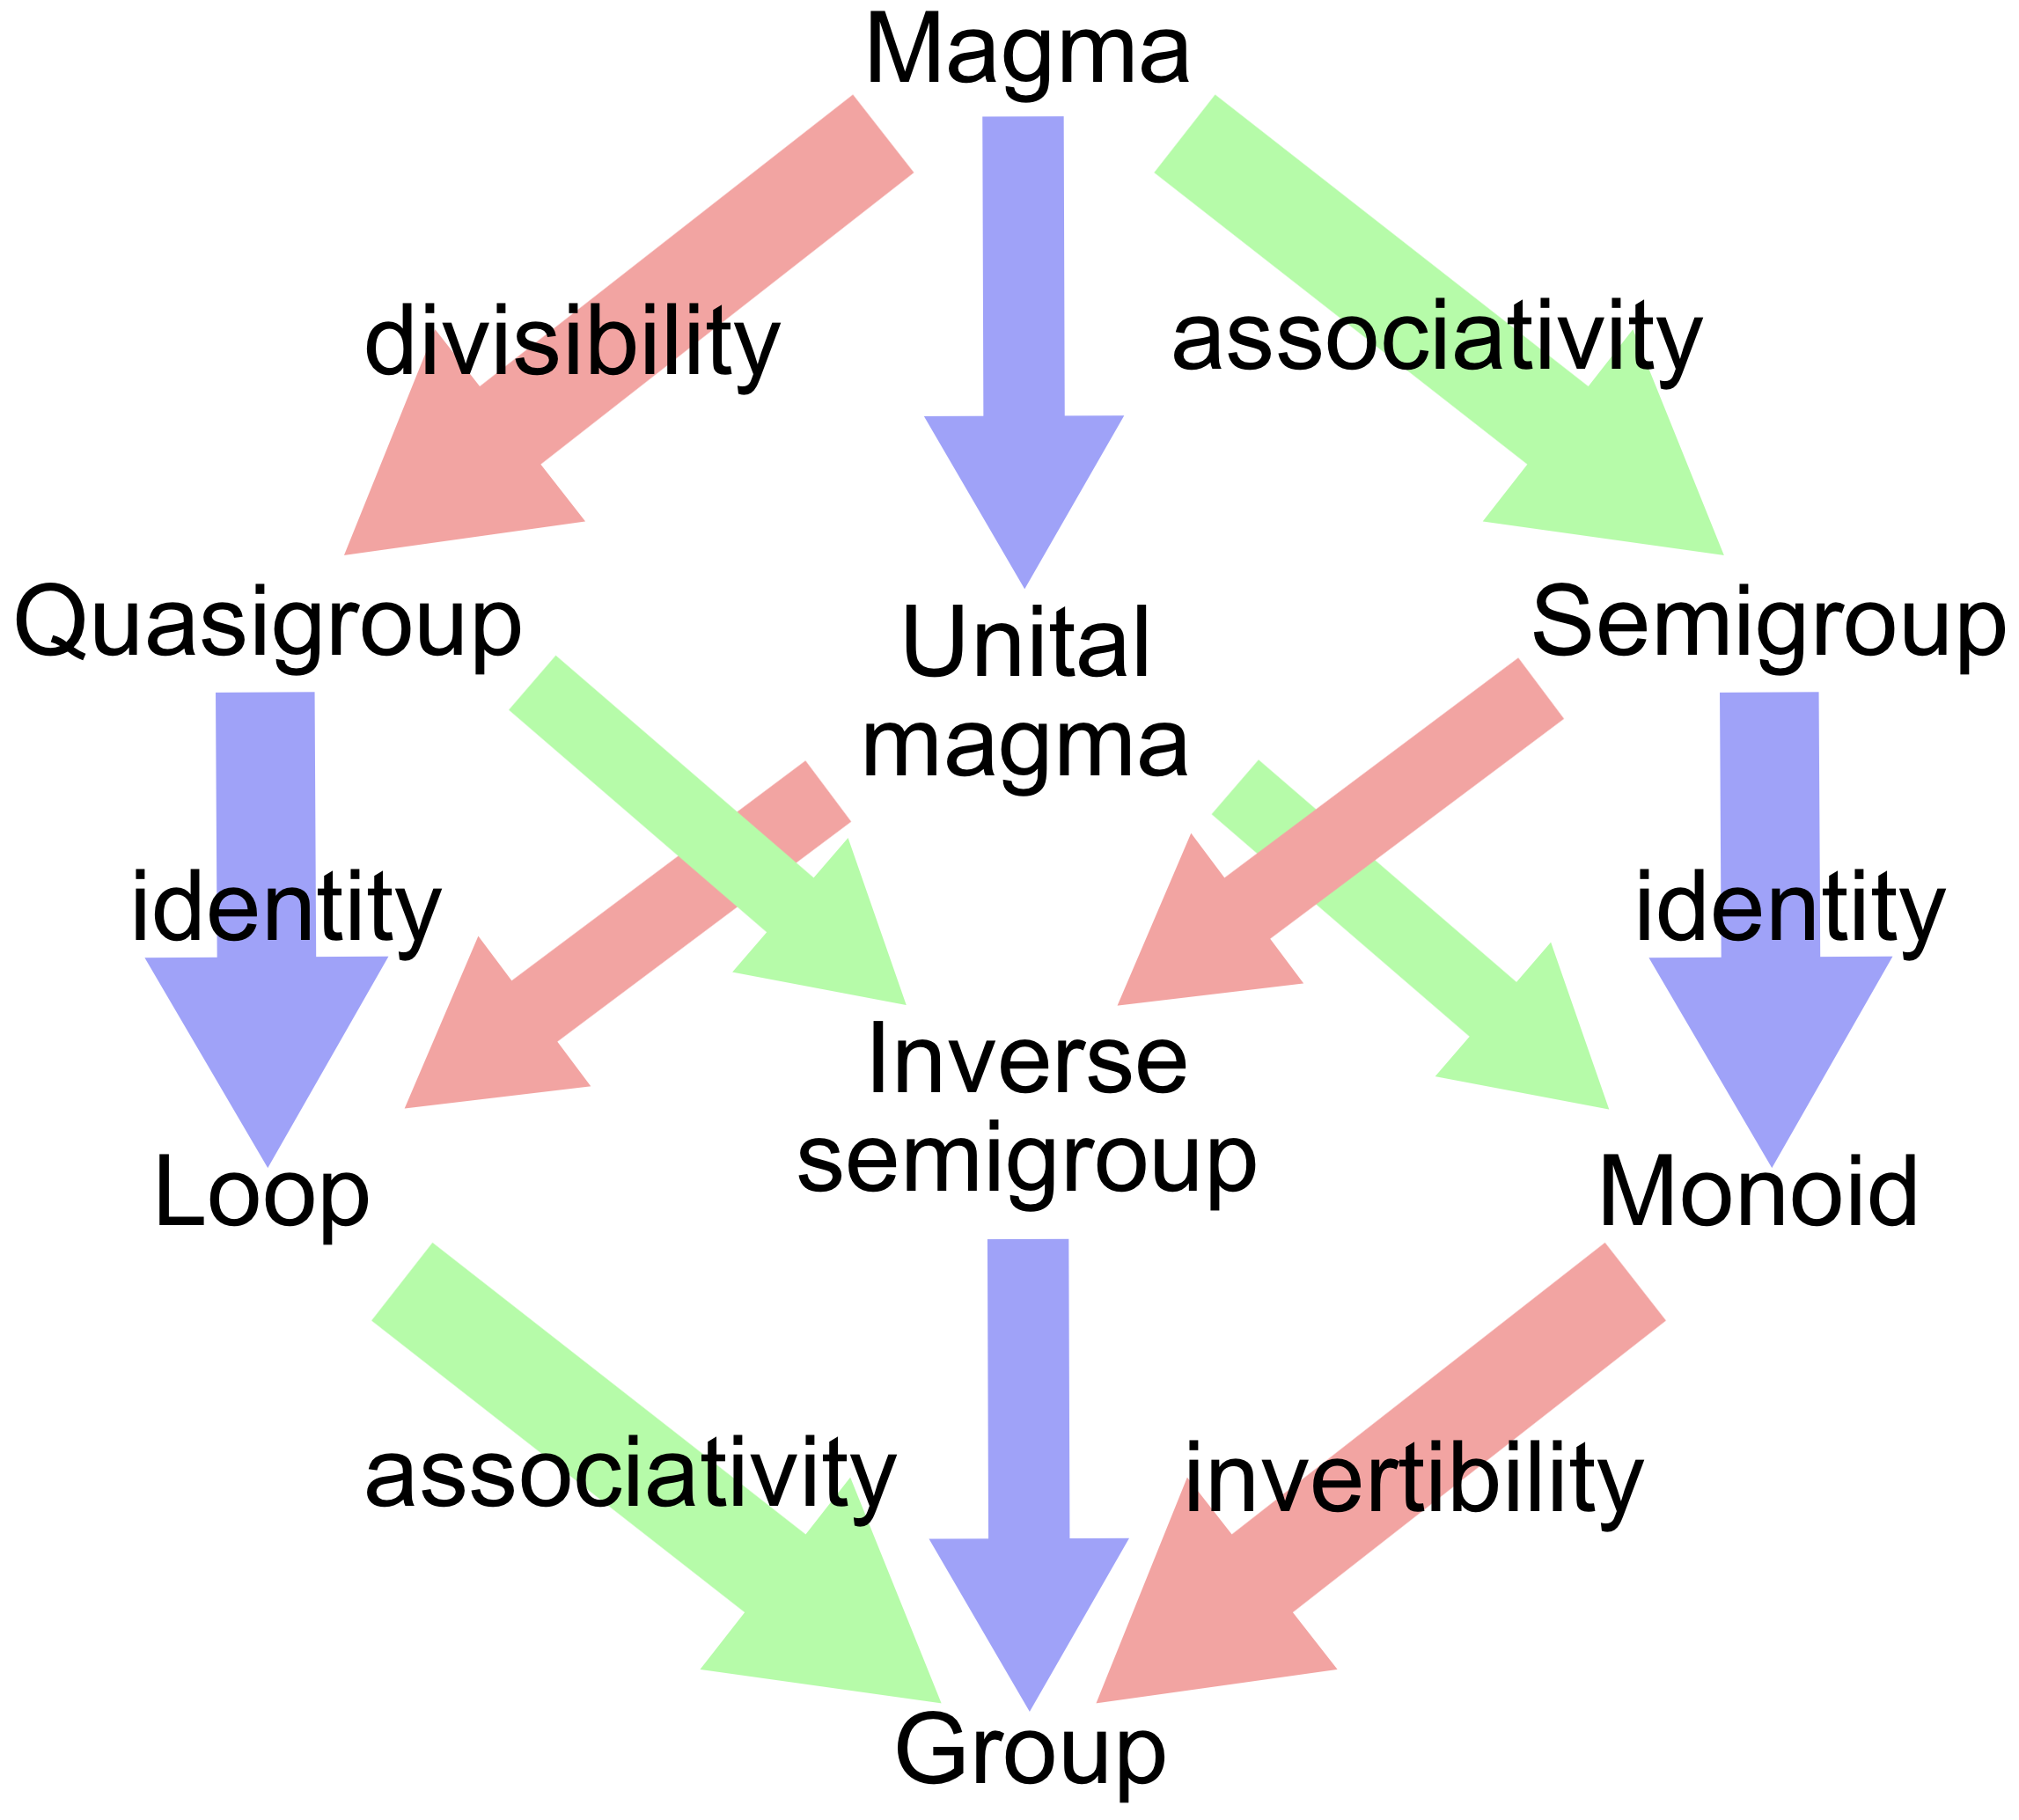 Groupoid hierarchy